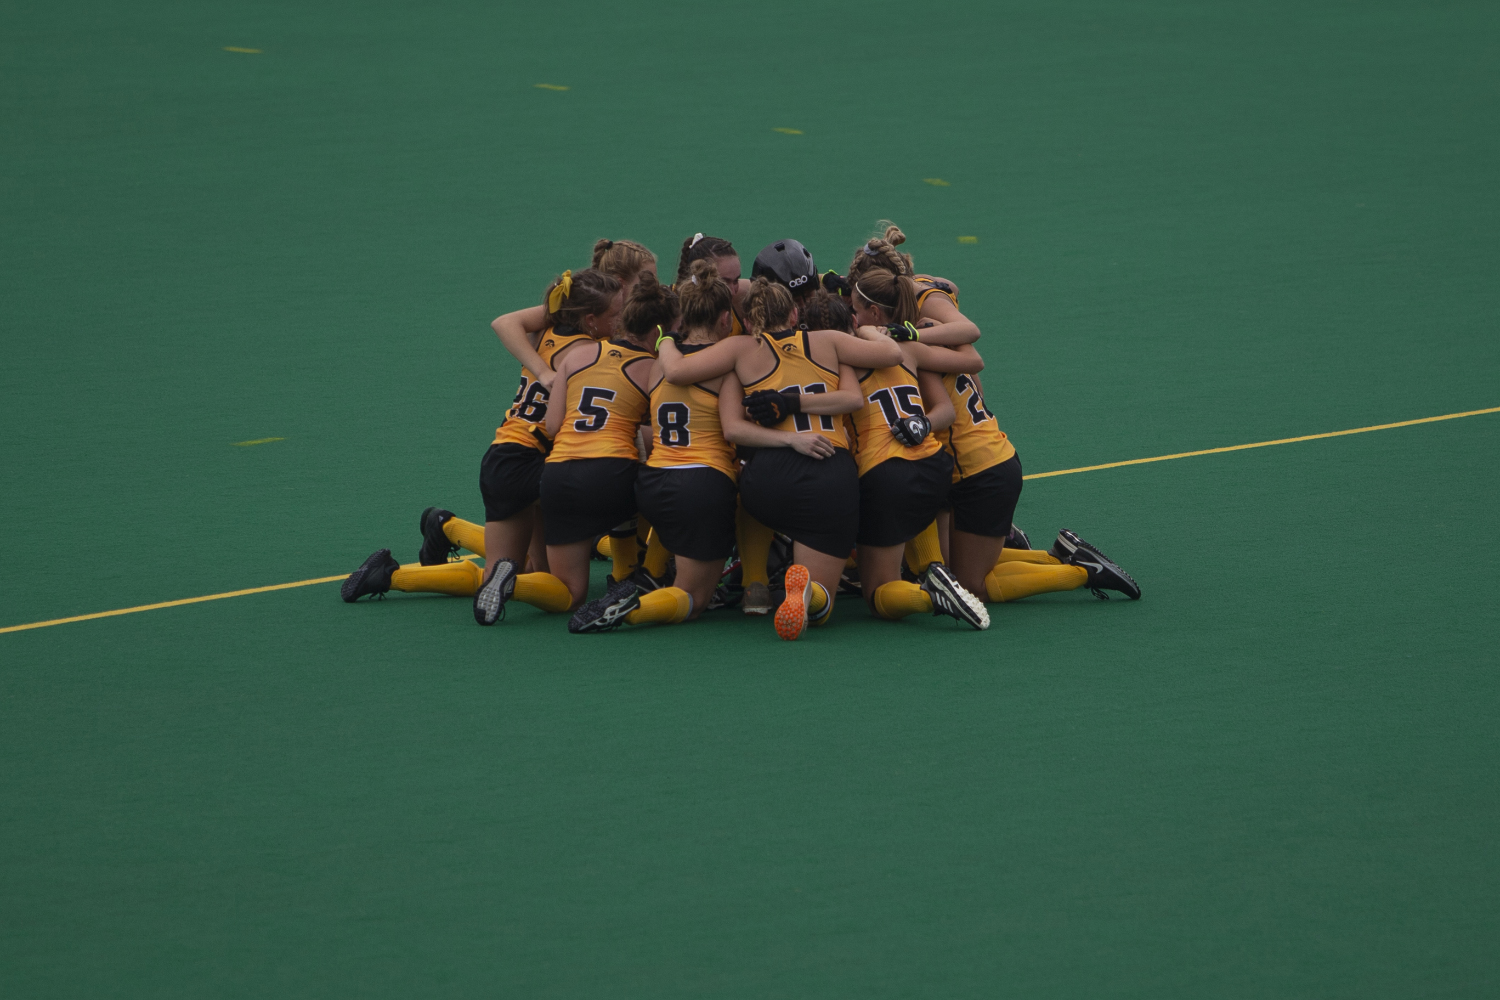 Iowa+players+huddle+on+the+field+during+a+field+hockey+game+between+Iowa+and+Columbia+at+Grant+Field+on+Sunday%2C+September+8%2C+2019.+The+Hawkeyes+defeated+the+Lions%2C+3-1.